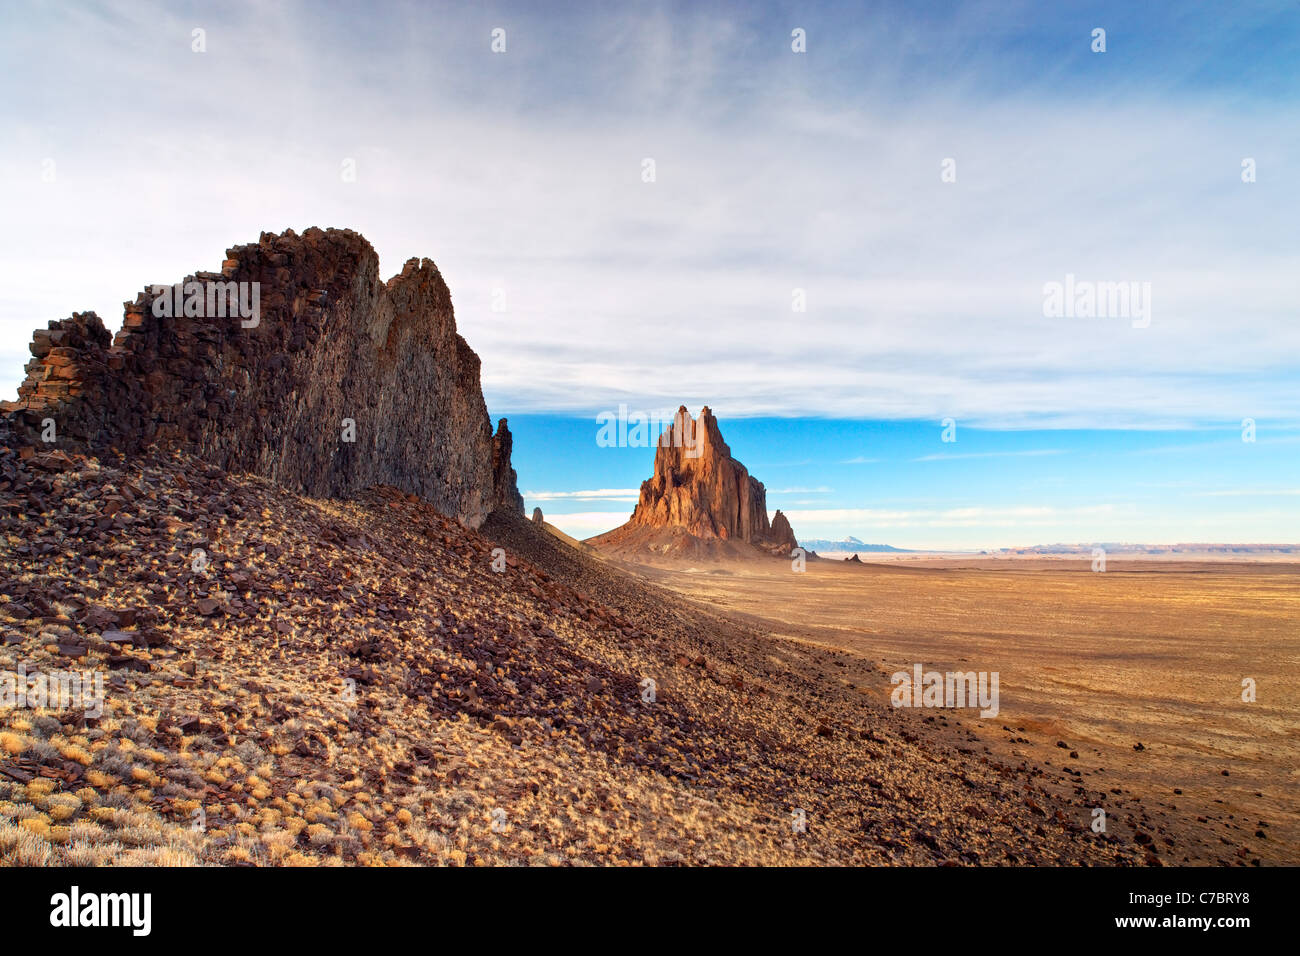 Shiprock Rock, New Mexico, USA - Stock Image